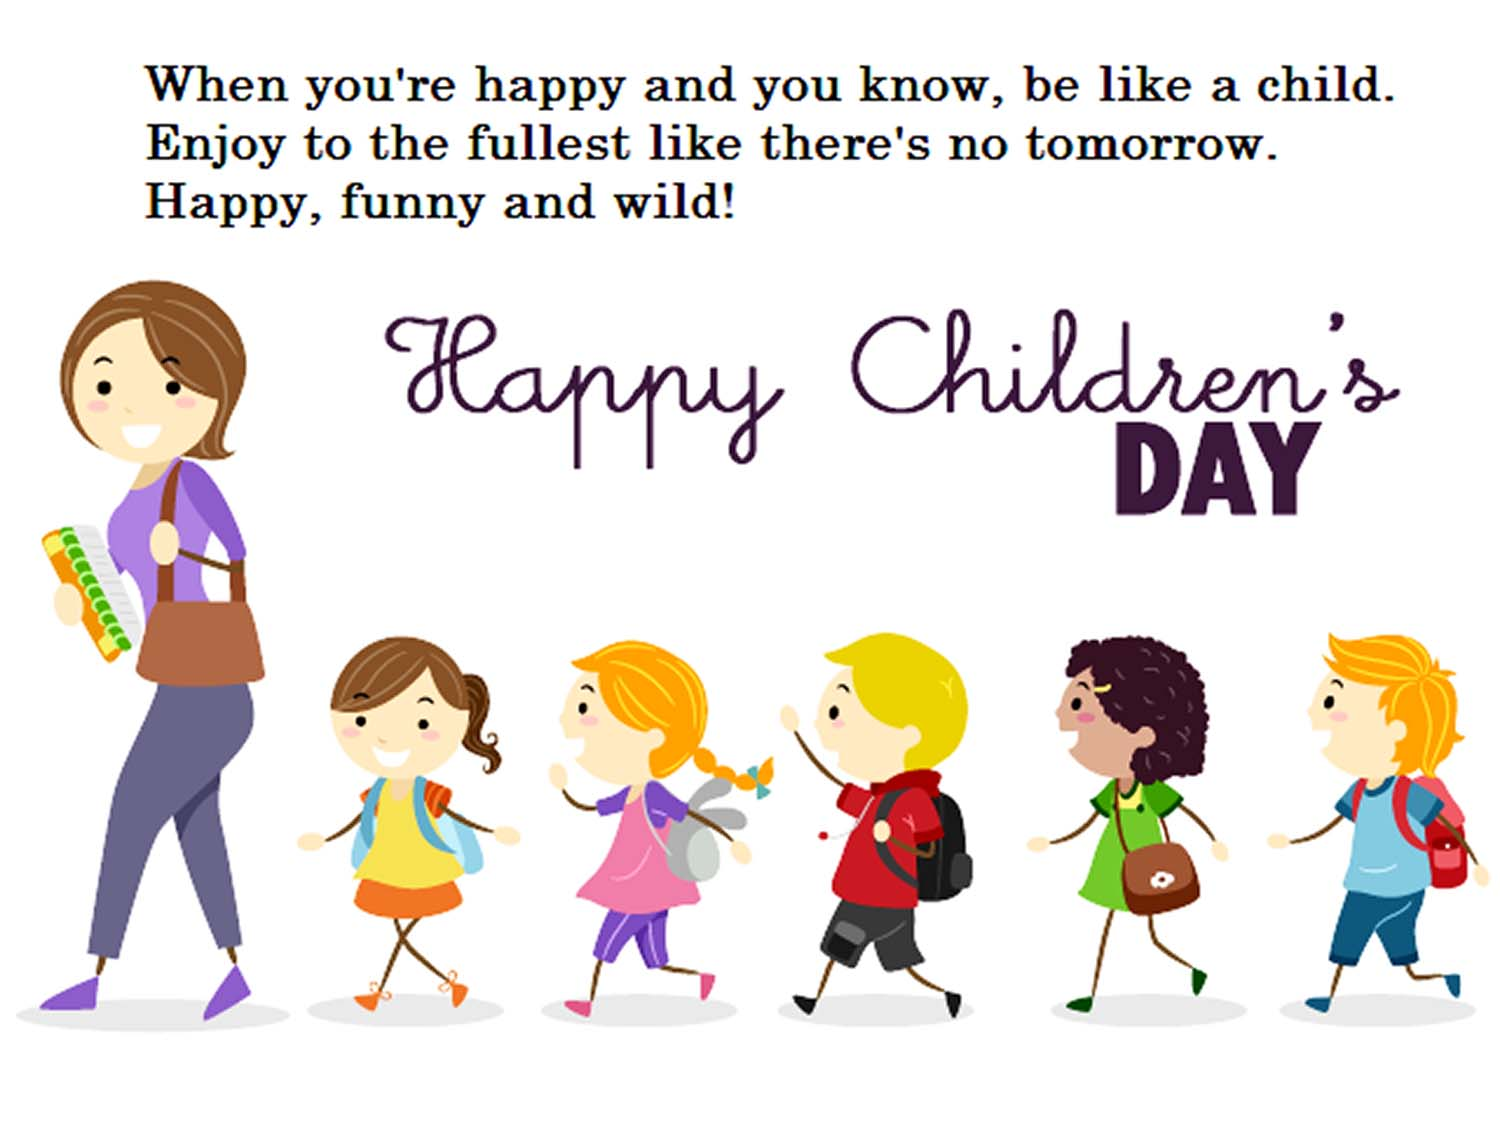 short poem on children's day in english